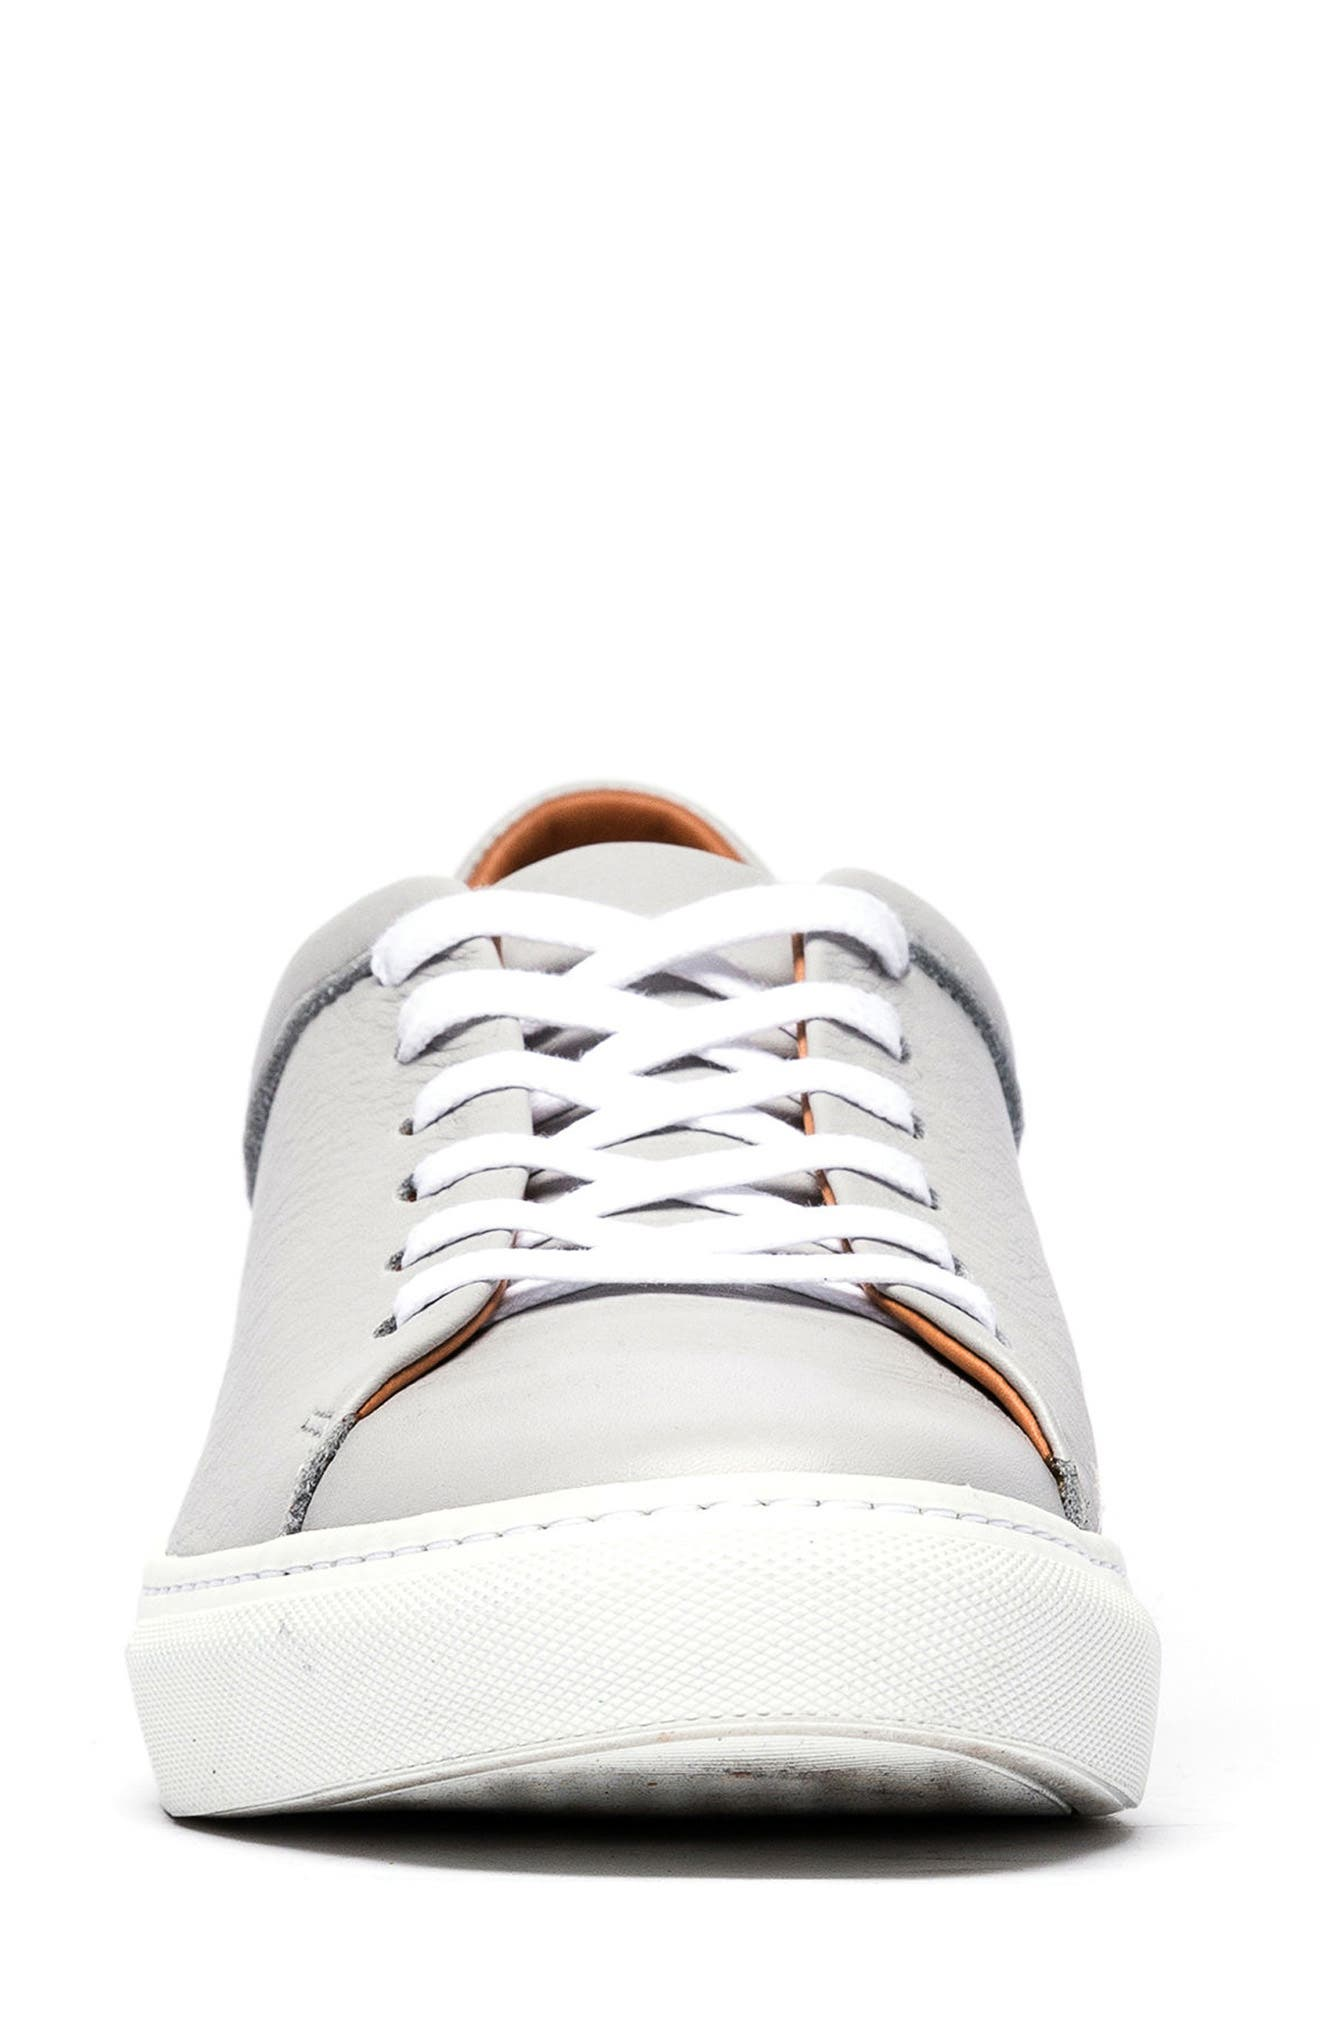 Windemere Sneaker,                             Alternate thumbnail 4, color,                             STONE LEATHER